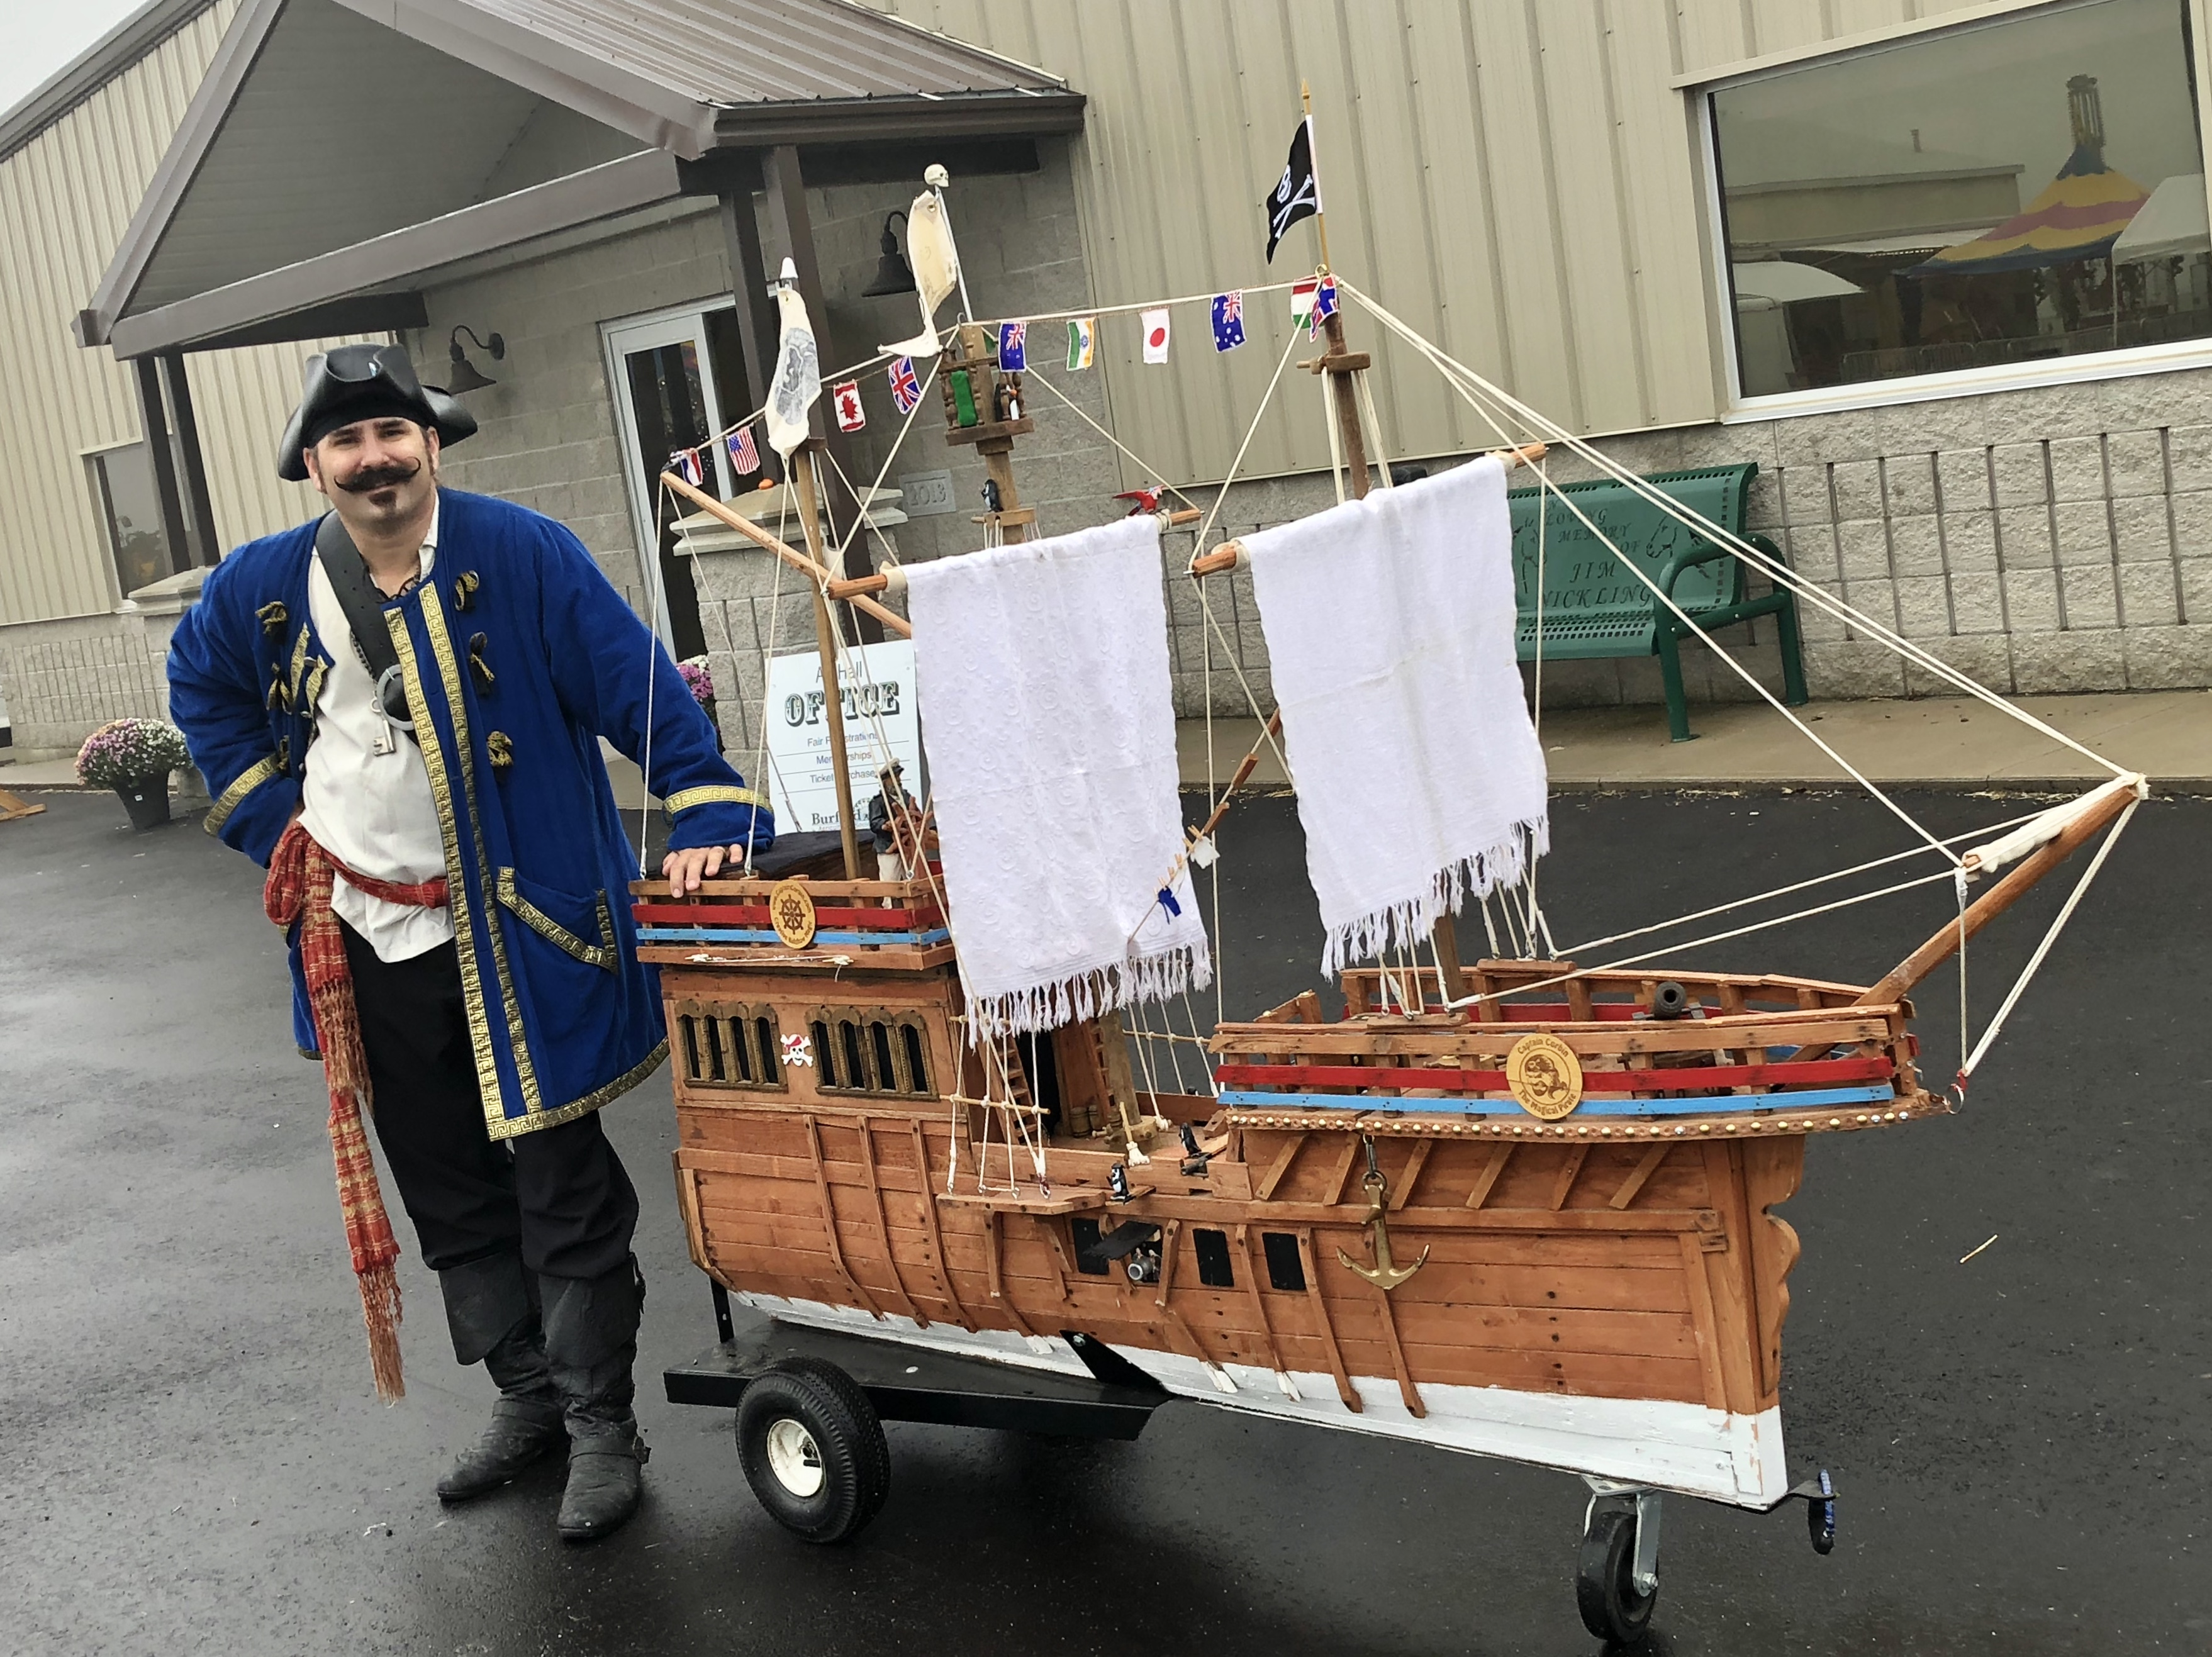 magic pirate ship, magic pirate, pirate show, event attraction